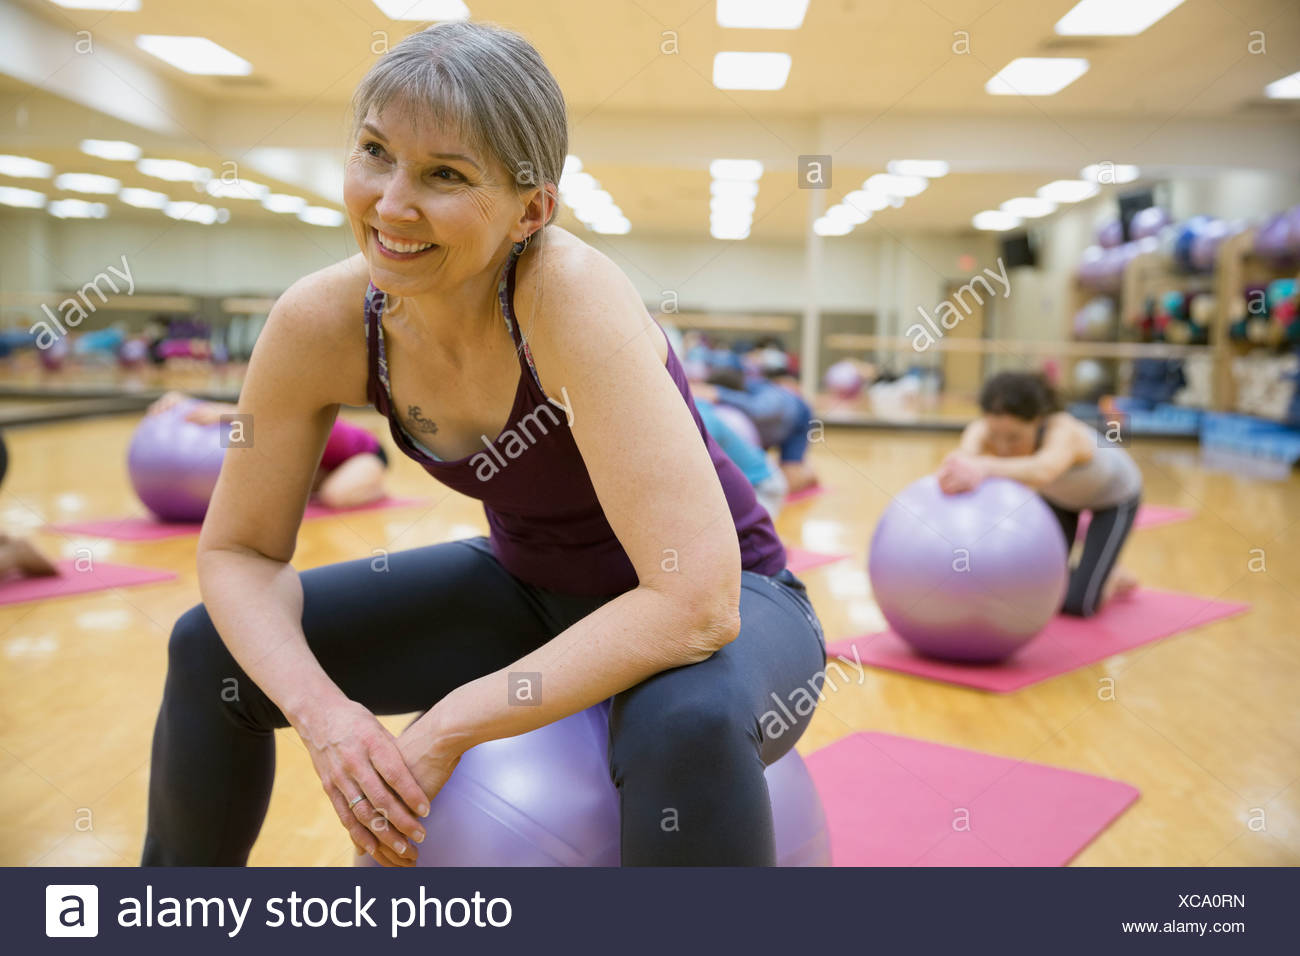 Smiling woman on fitness ball en classe d'exercice Photo Stock